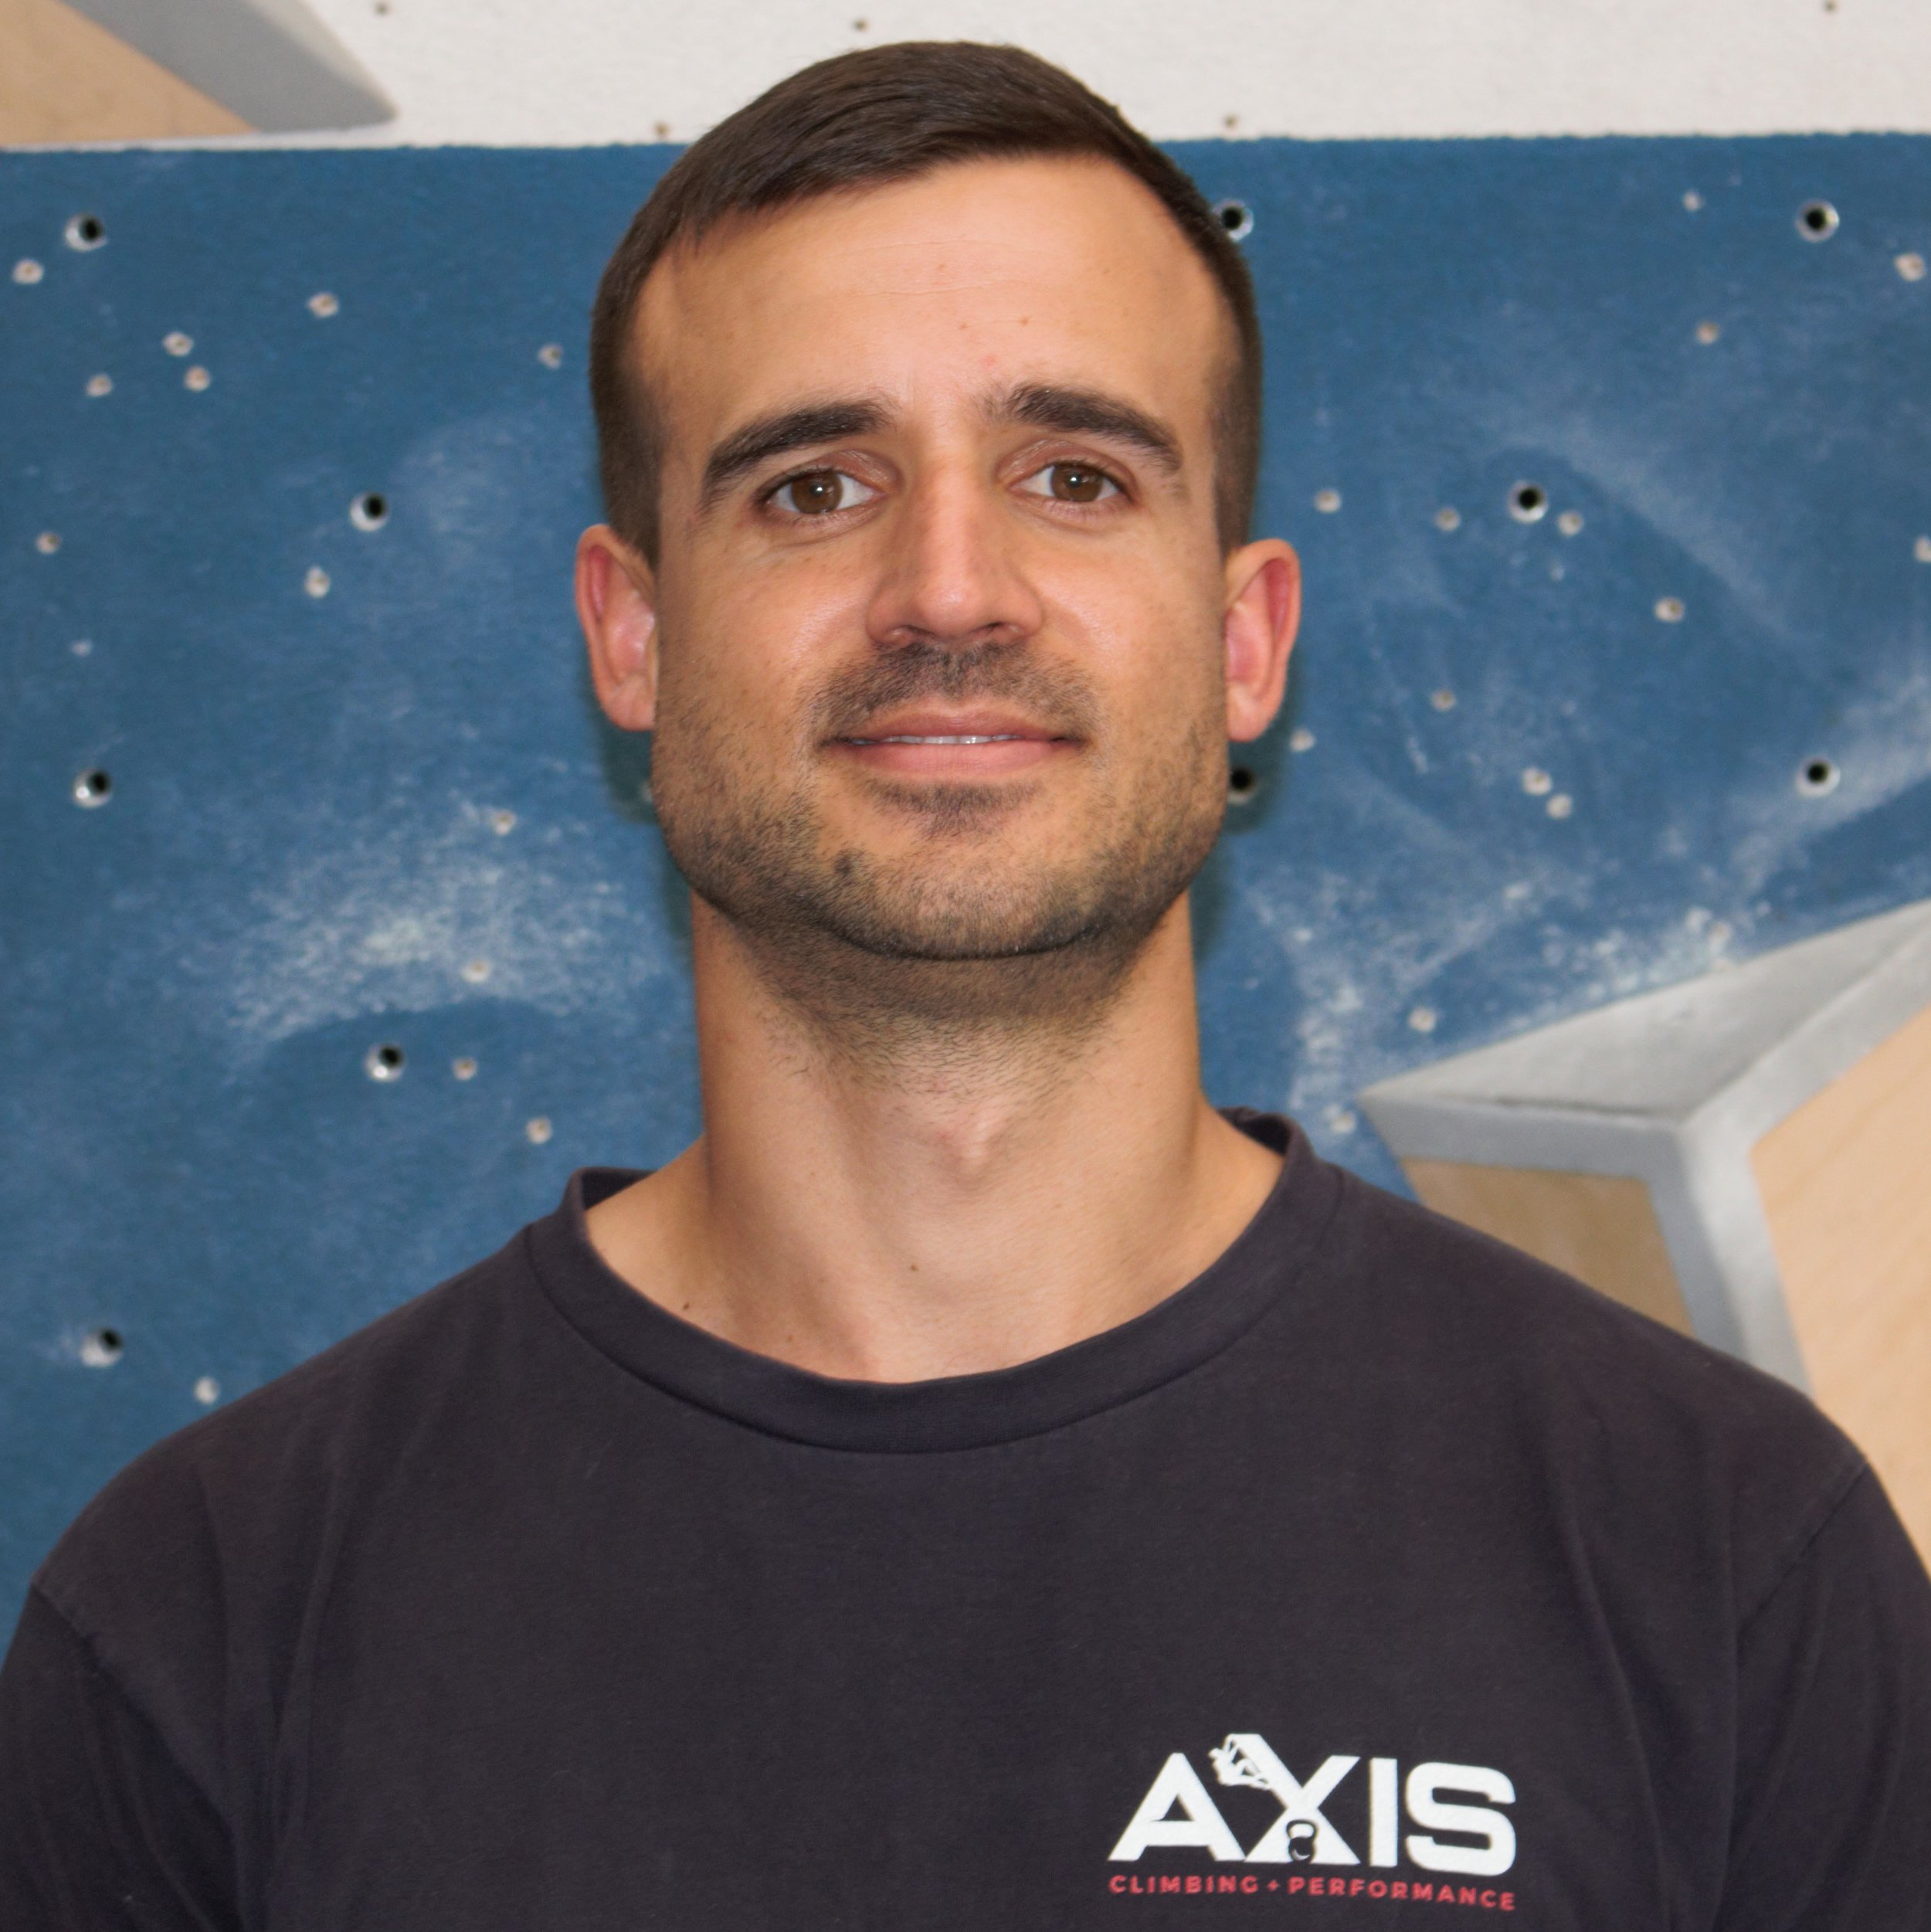 Ashley Thomas-Head Coach - Since becoming a qualified Master Personal Trainer in 2014, I have developed a passion for not only challenging people to overcome the challenges they face but for helping to guide them by using coaching skills and questions so they can come to their own destination.I believe in keeping things simple. Move Well then Move Often.